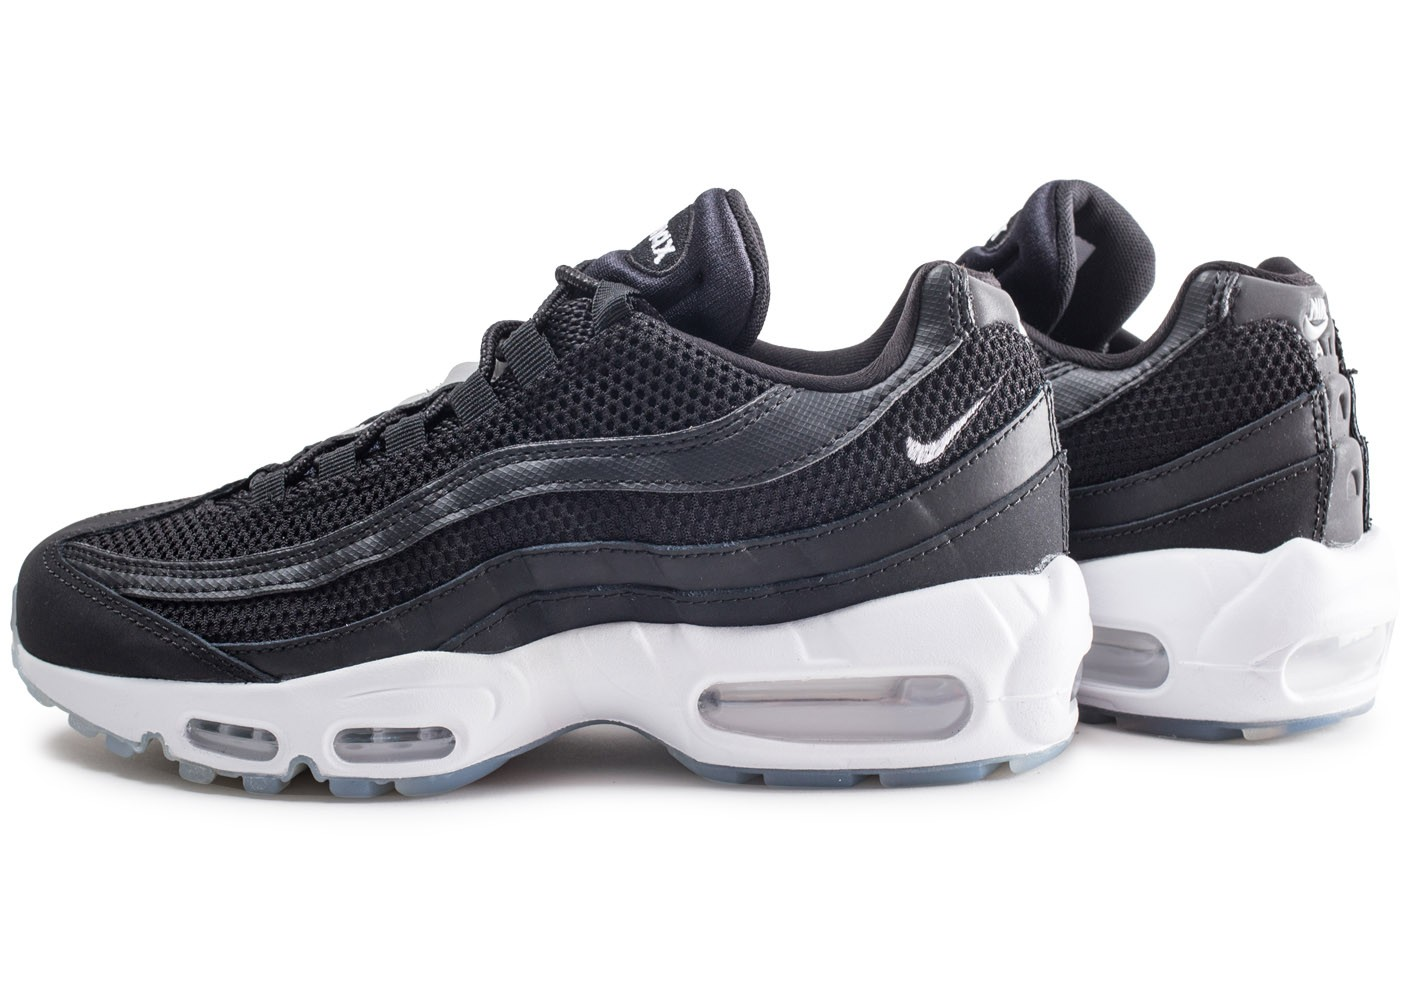 cheap sale picked up reputable site Nike Air Max 95 Essential noire et argent - Chaussures ...